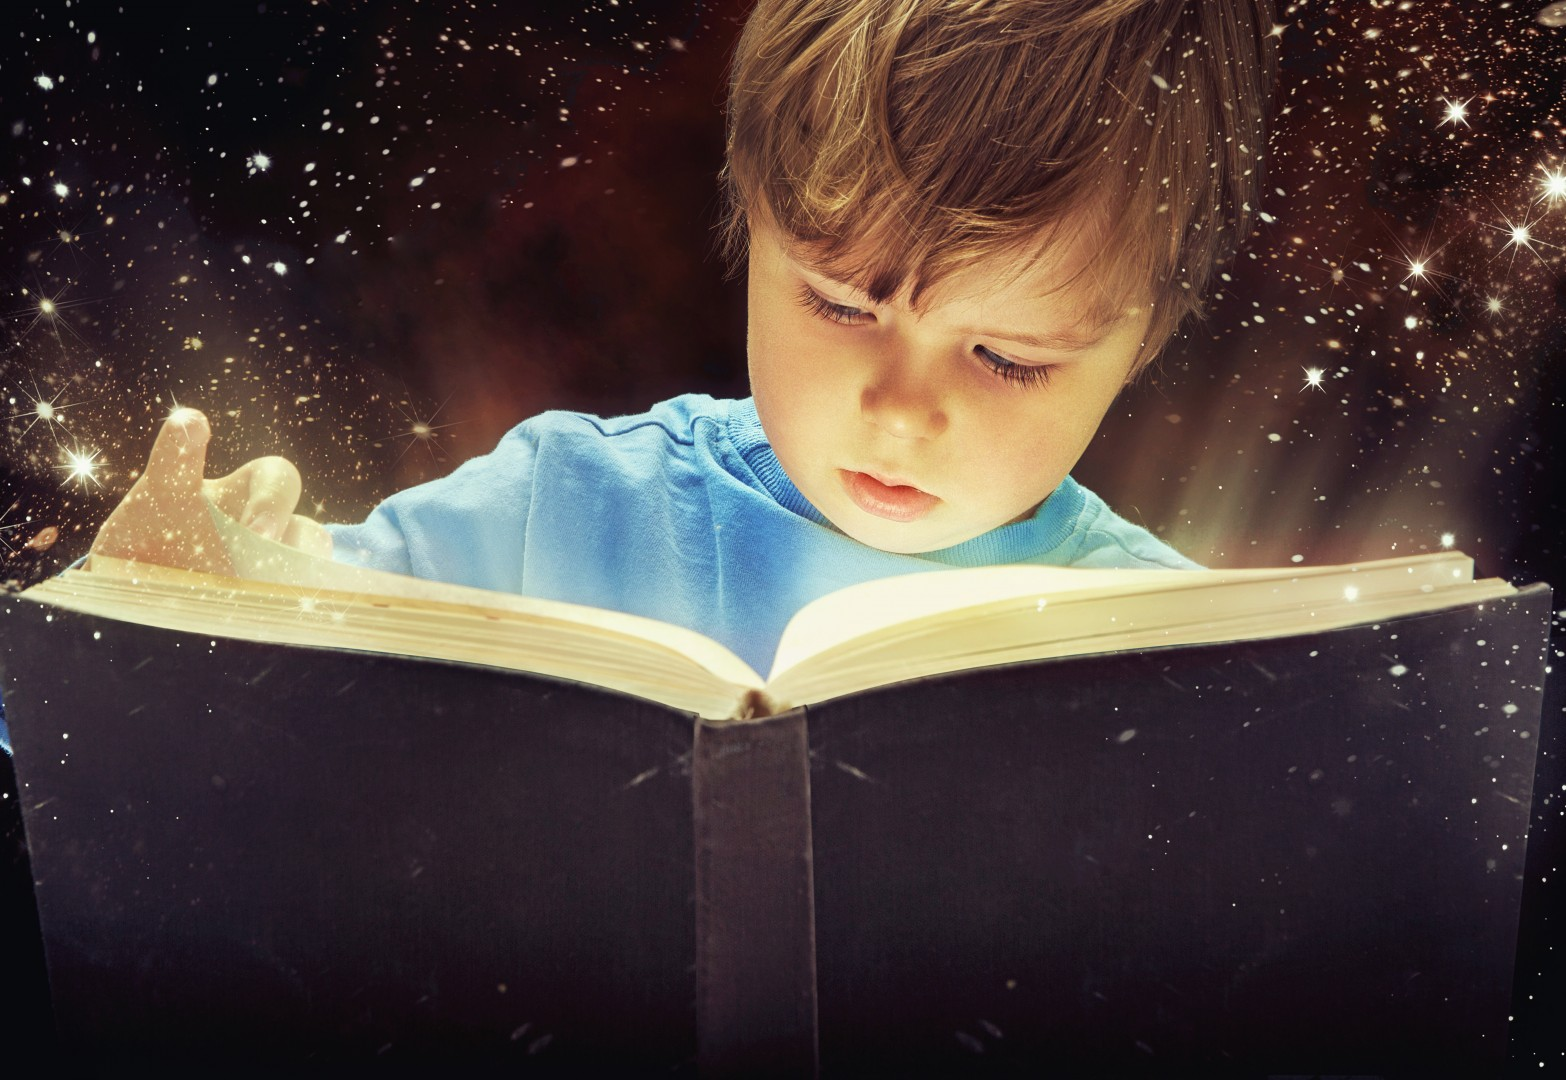 Sharing the Love of Reading Boy with Magic Book